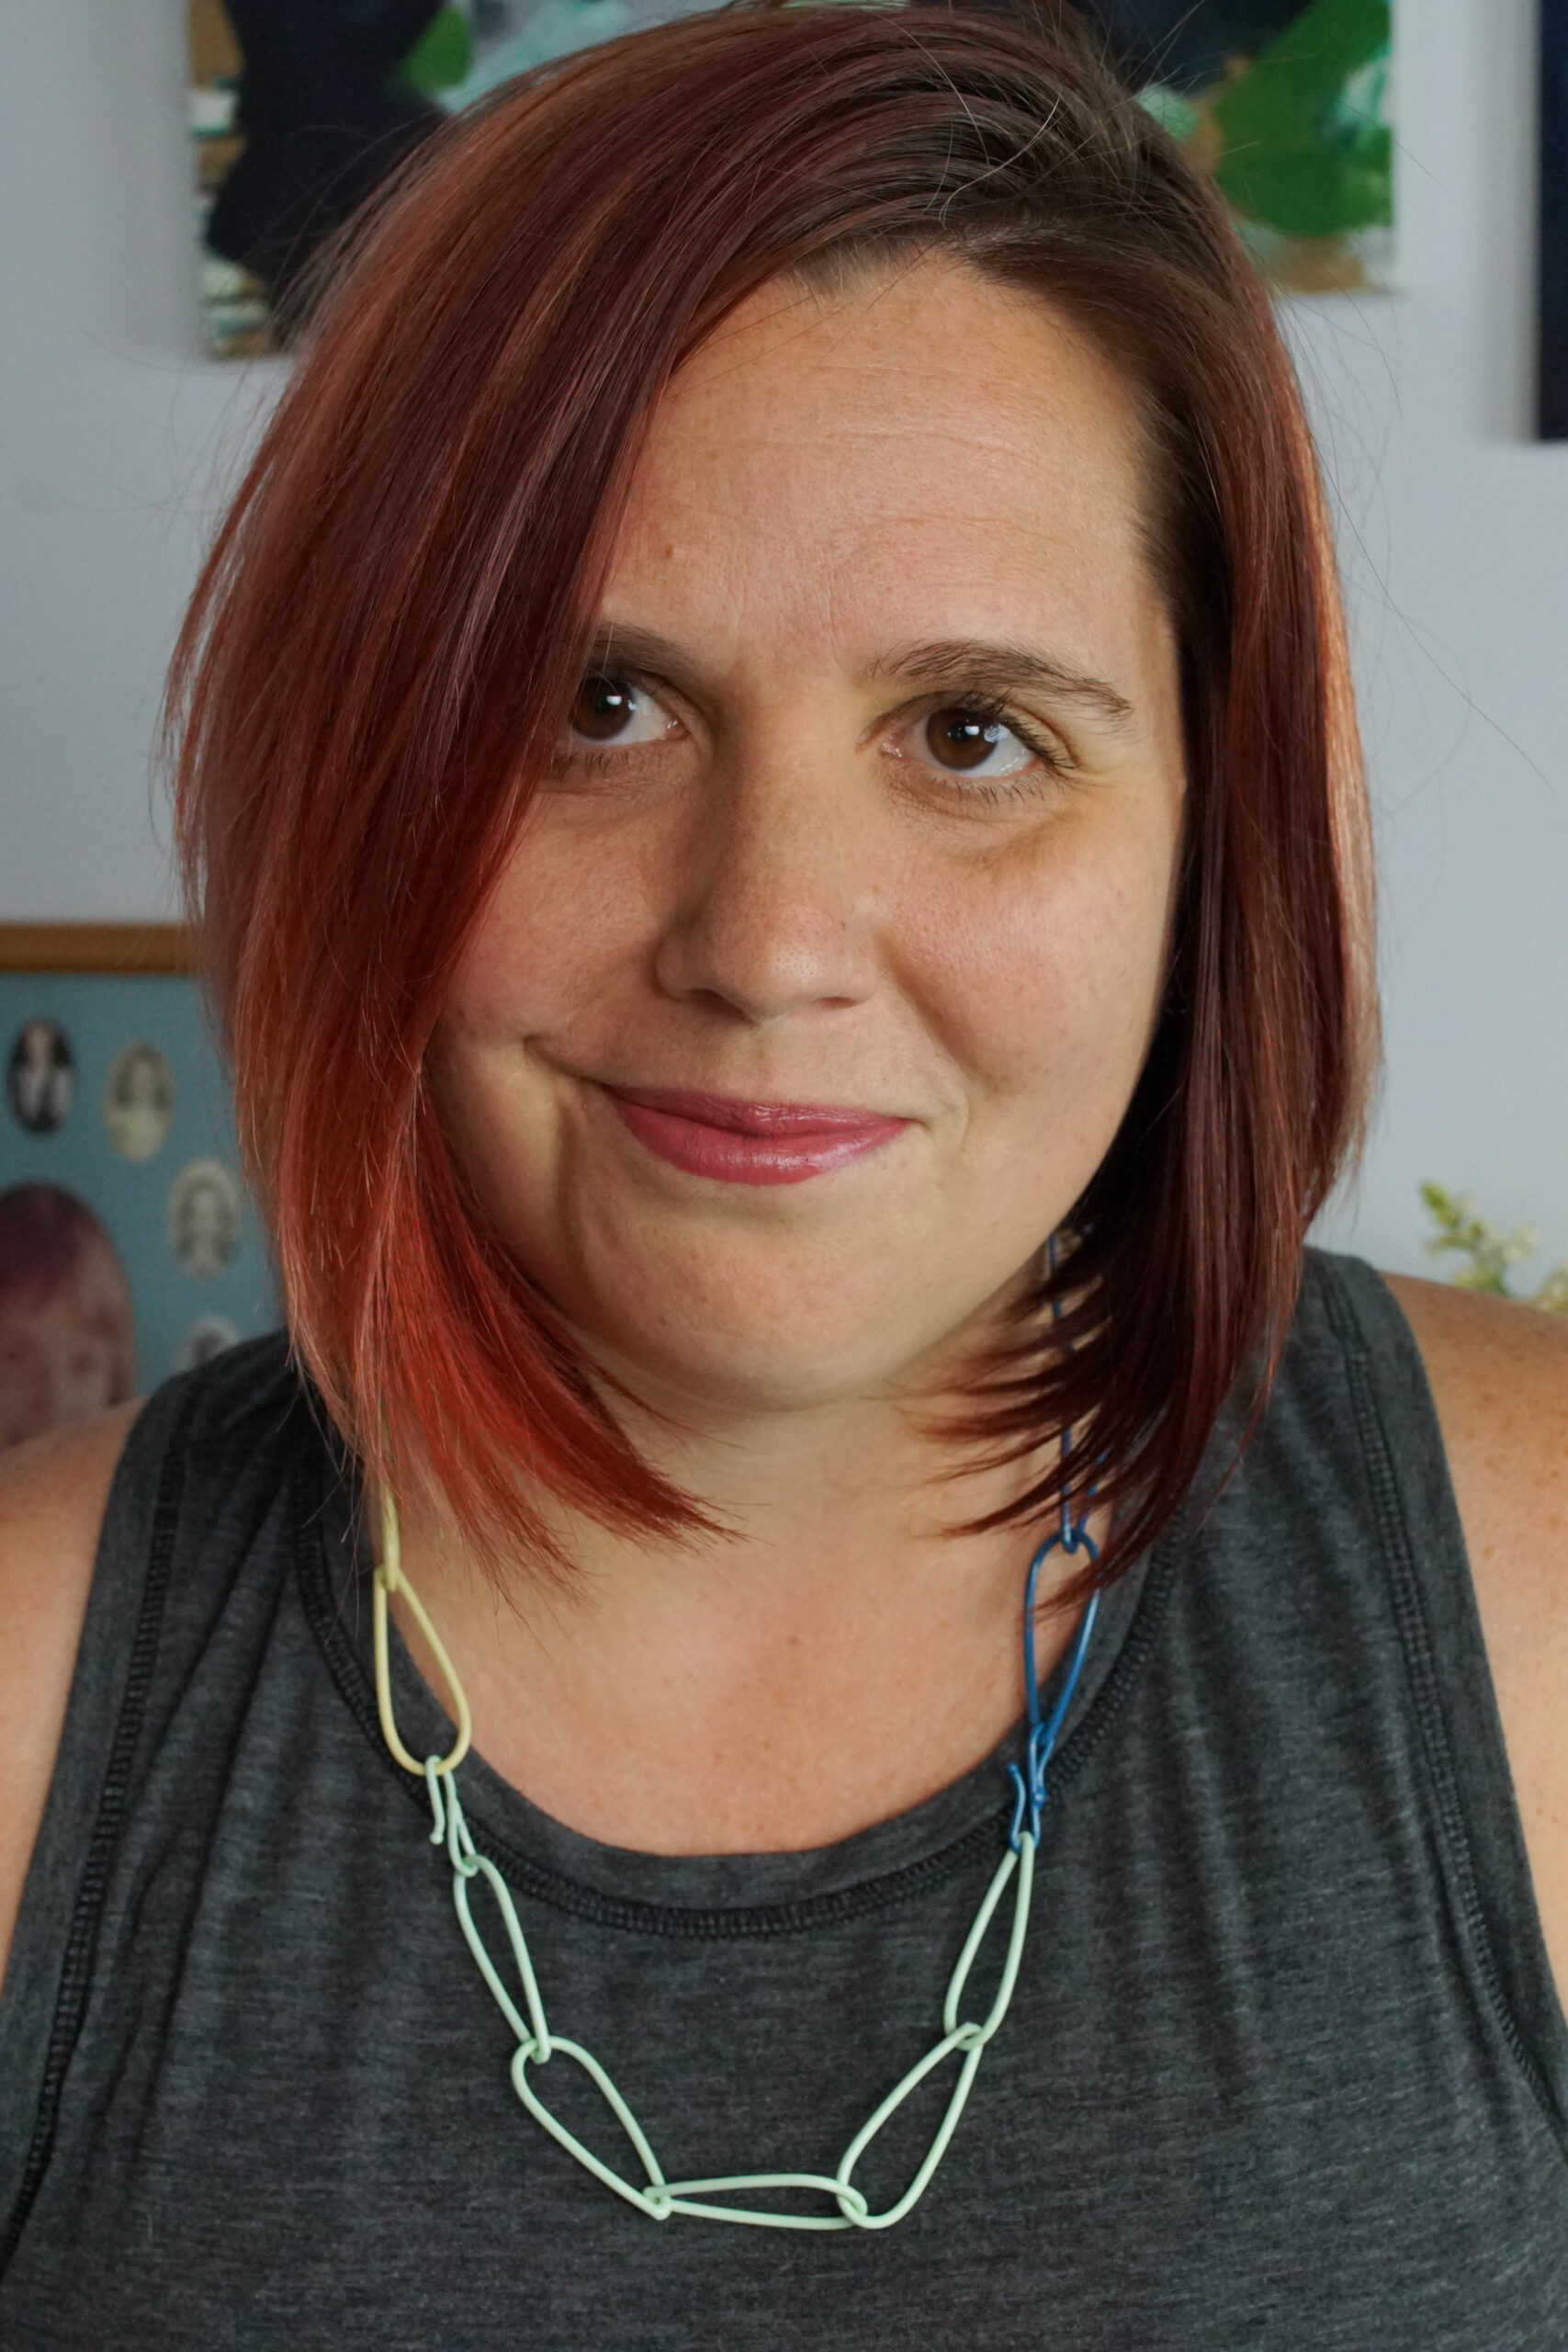 #174 Megan Auman: Designer, Metalsmith, and Educator